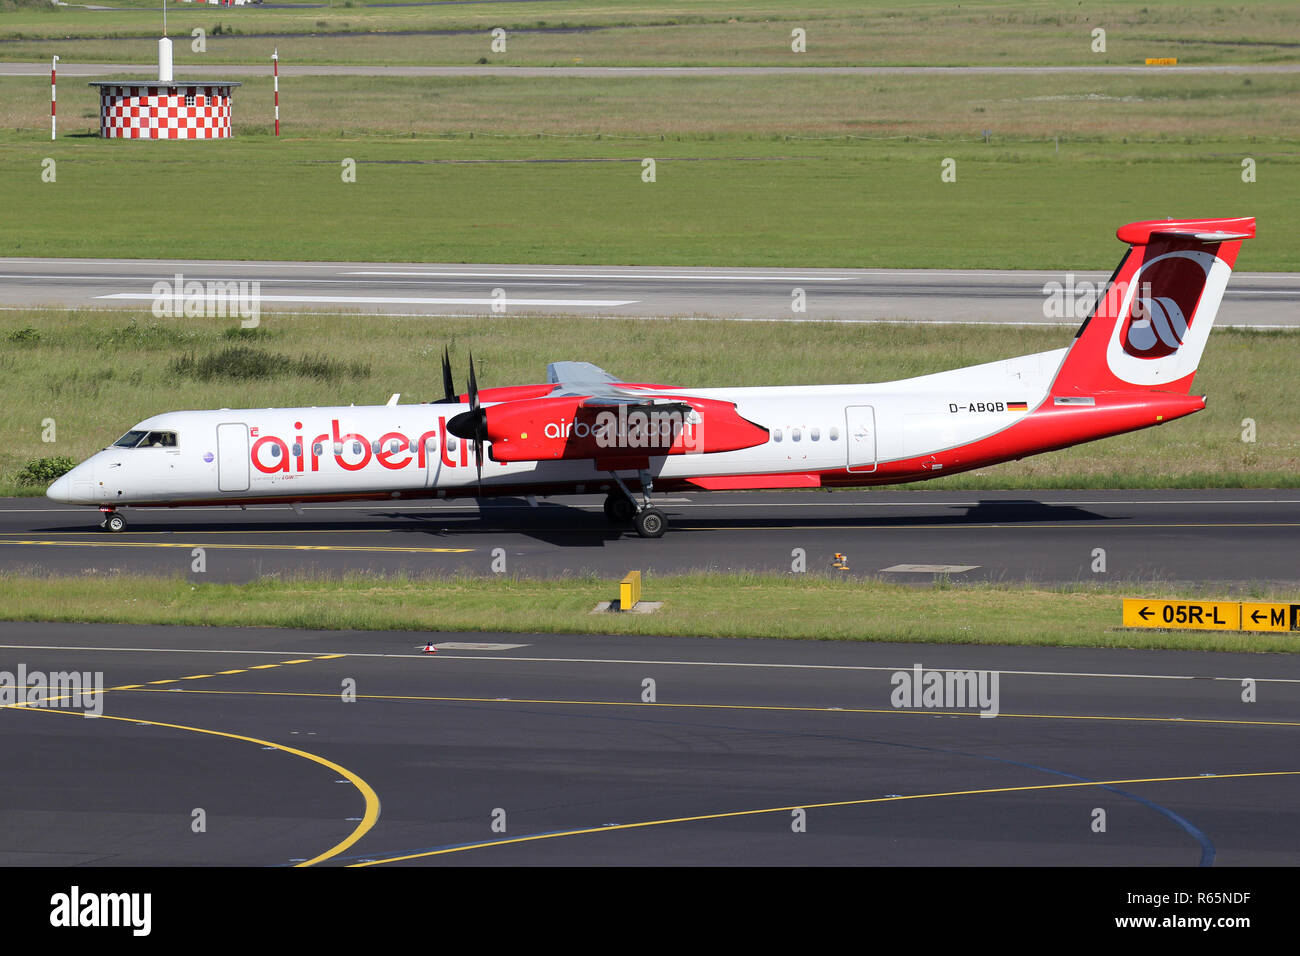 German LGW Bombardier Dash 8 Q400 in Air Berlin livery with registration D-ABQB on taxiway of Dusseldorf Airport. - Stock Image